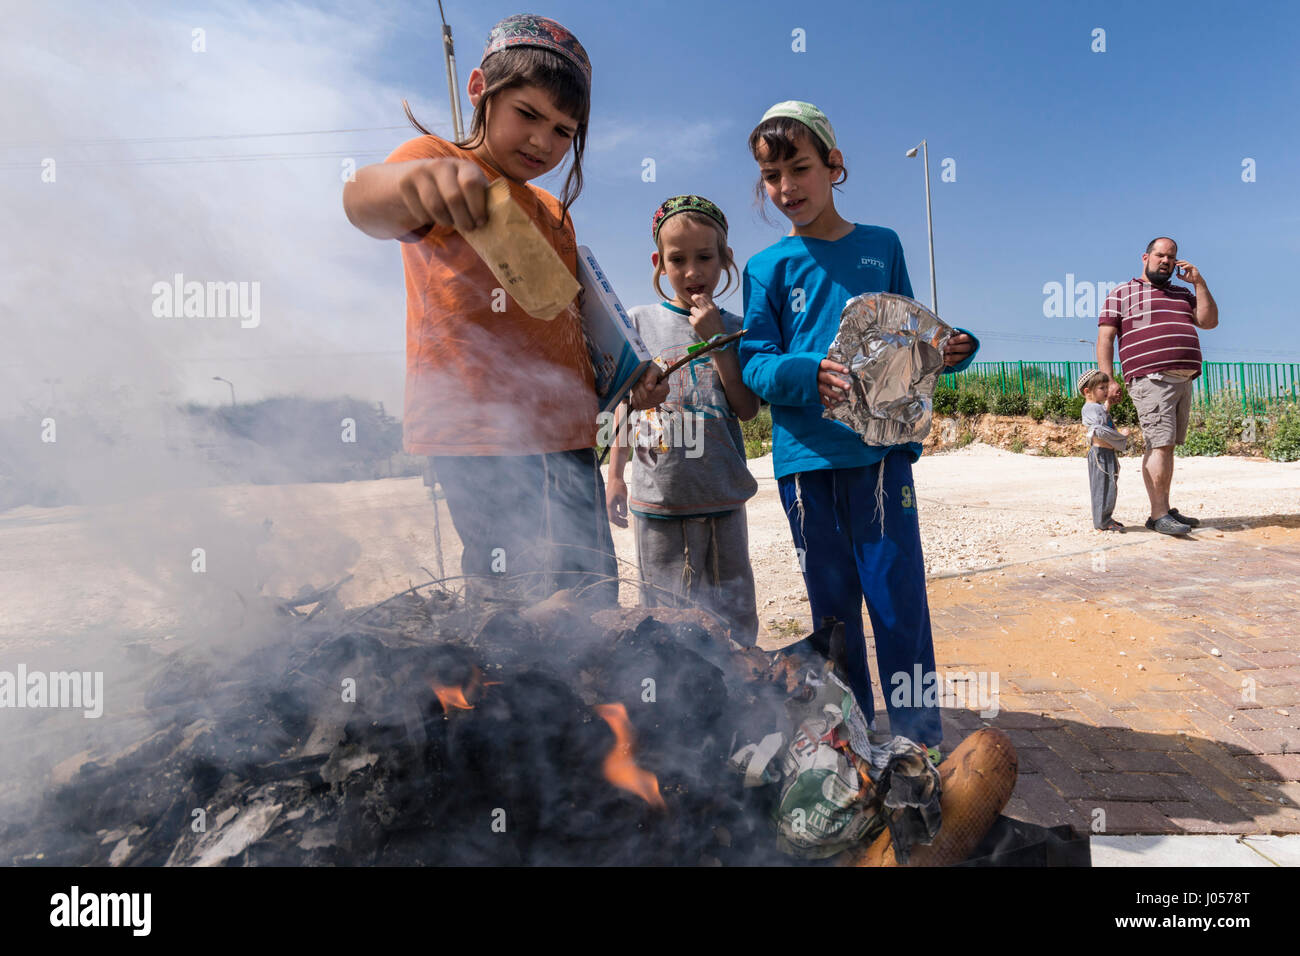 Elkana, Israel. 10th April, 2017. Jewish Orthodox childern burn breads, wheat and flour, as part of the preperations - Stock Image